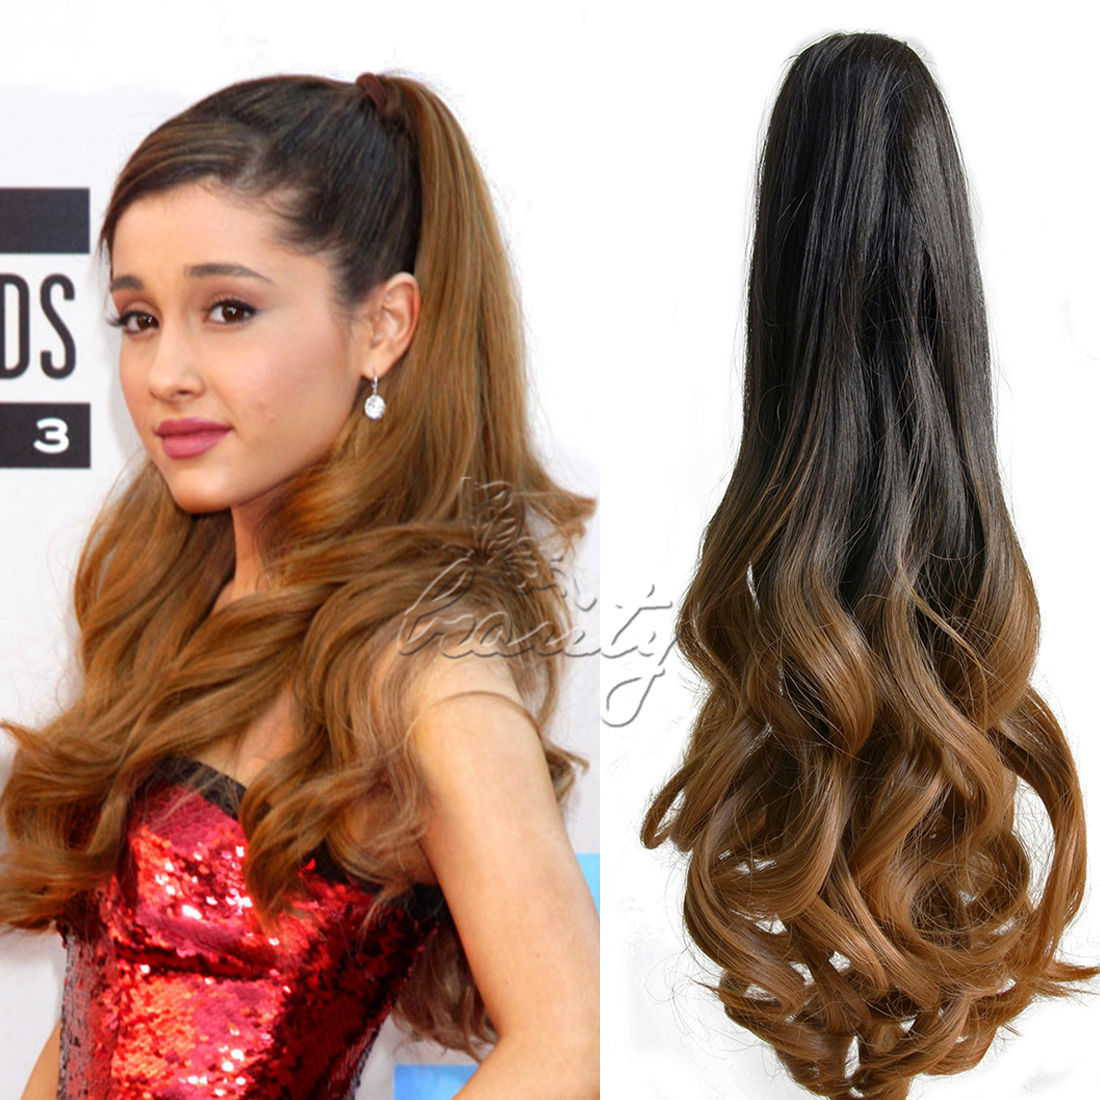 We Have This Curly Ponytail With Other Color And The Straight If You Are Intersted Pls Kindly Check Link